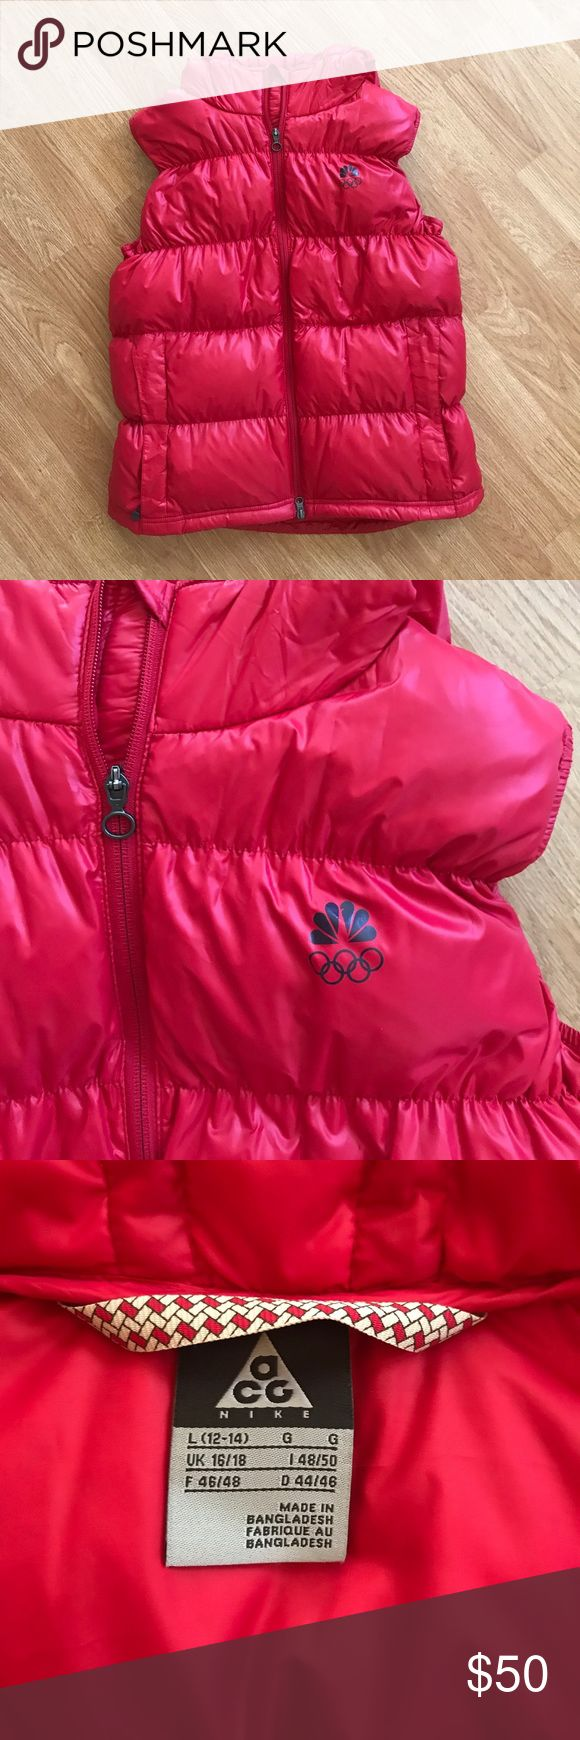 Women's Nike ACG Down NBC Olympic Vest Awesome Nike down filled vest with the NBC logo from the Olympics! Excellent condition doesn't appear to be worn! Has a hood, 2 front pockets and a hem cinchcord. Large 12/14 Nike ACG Jackets & Coats Puffers